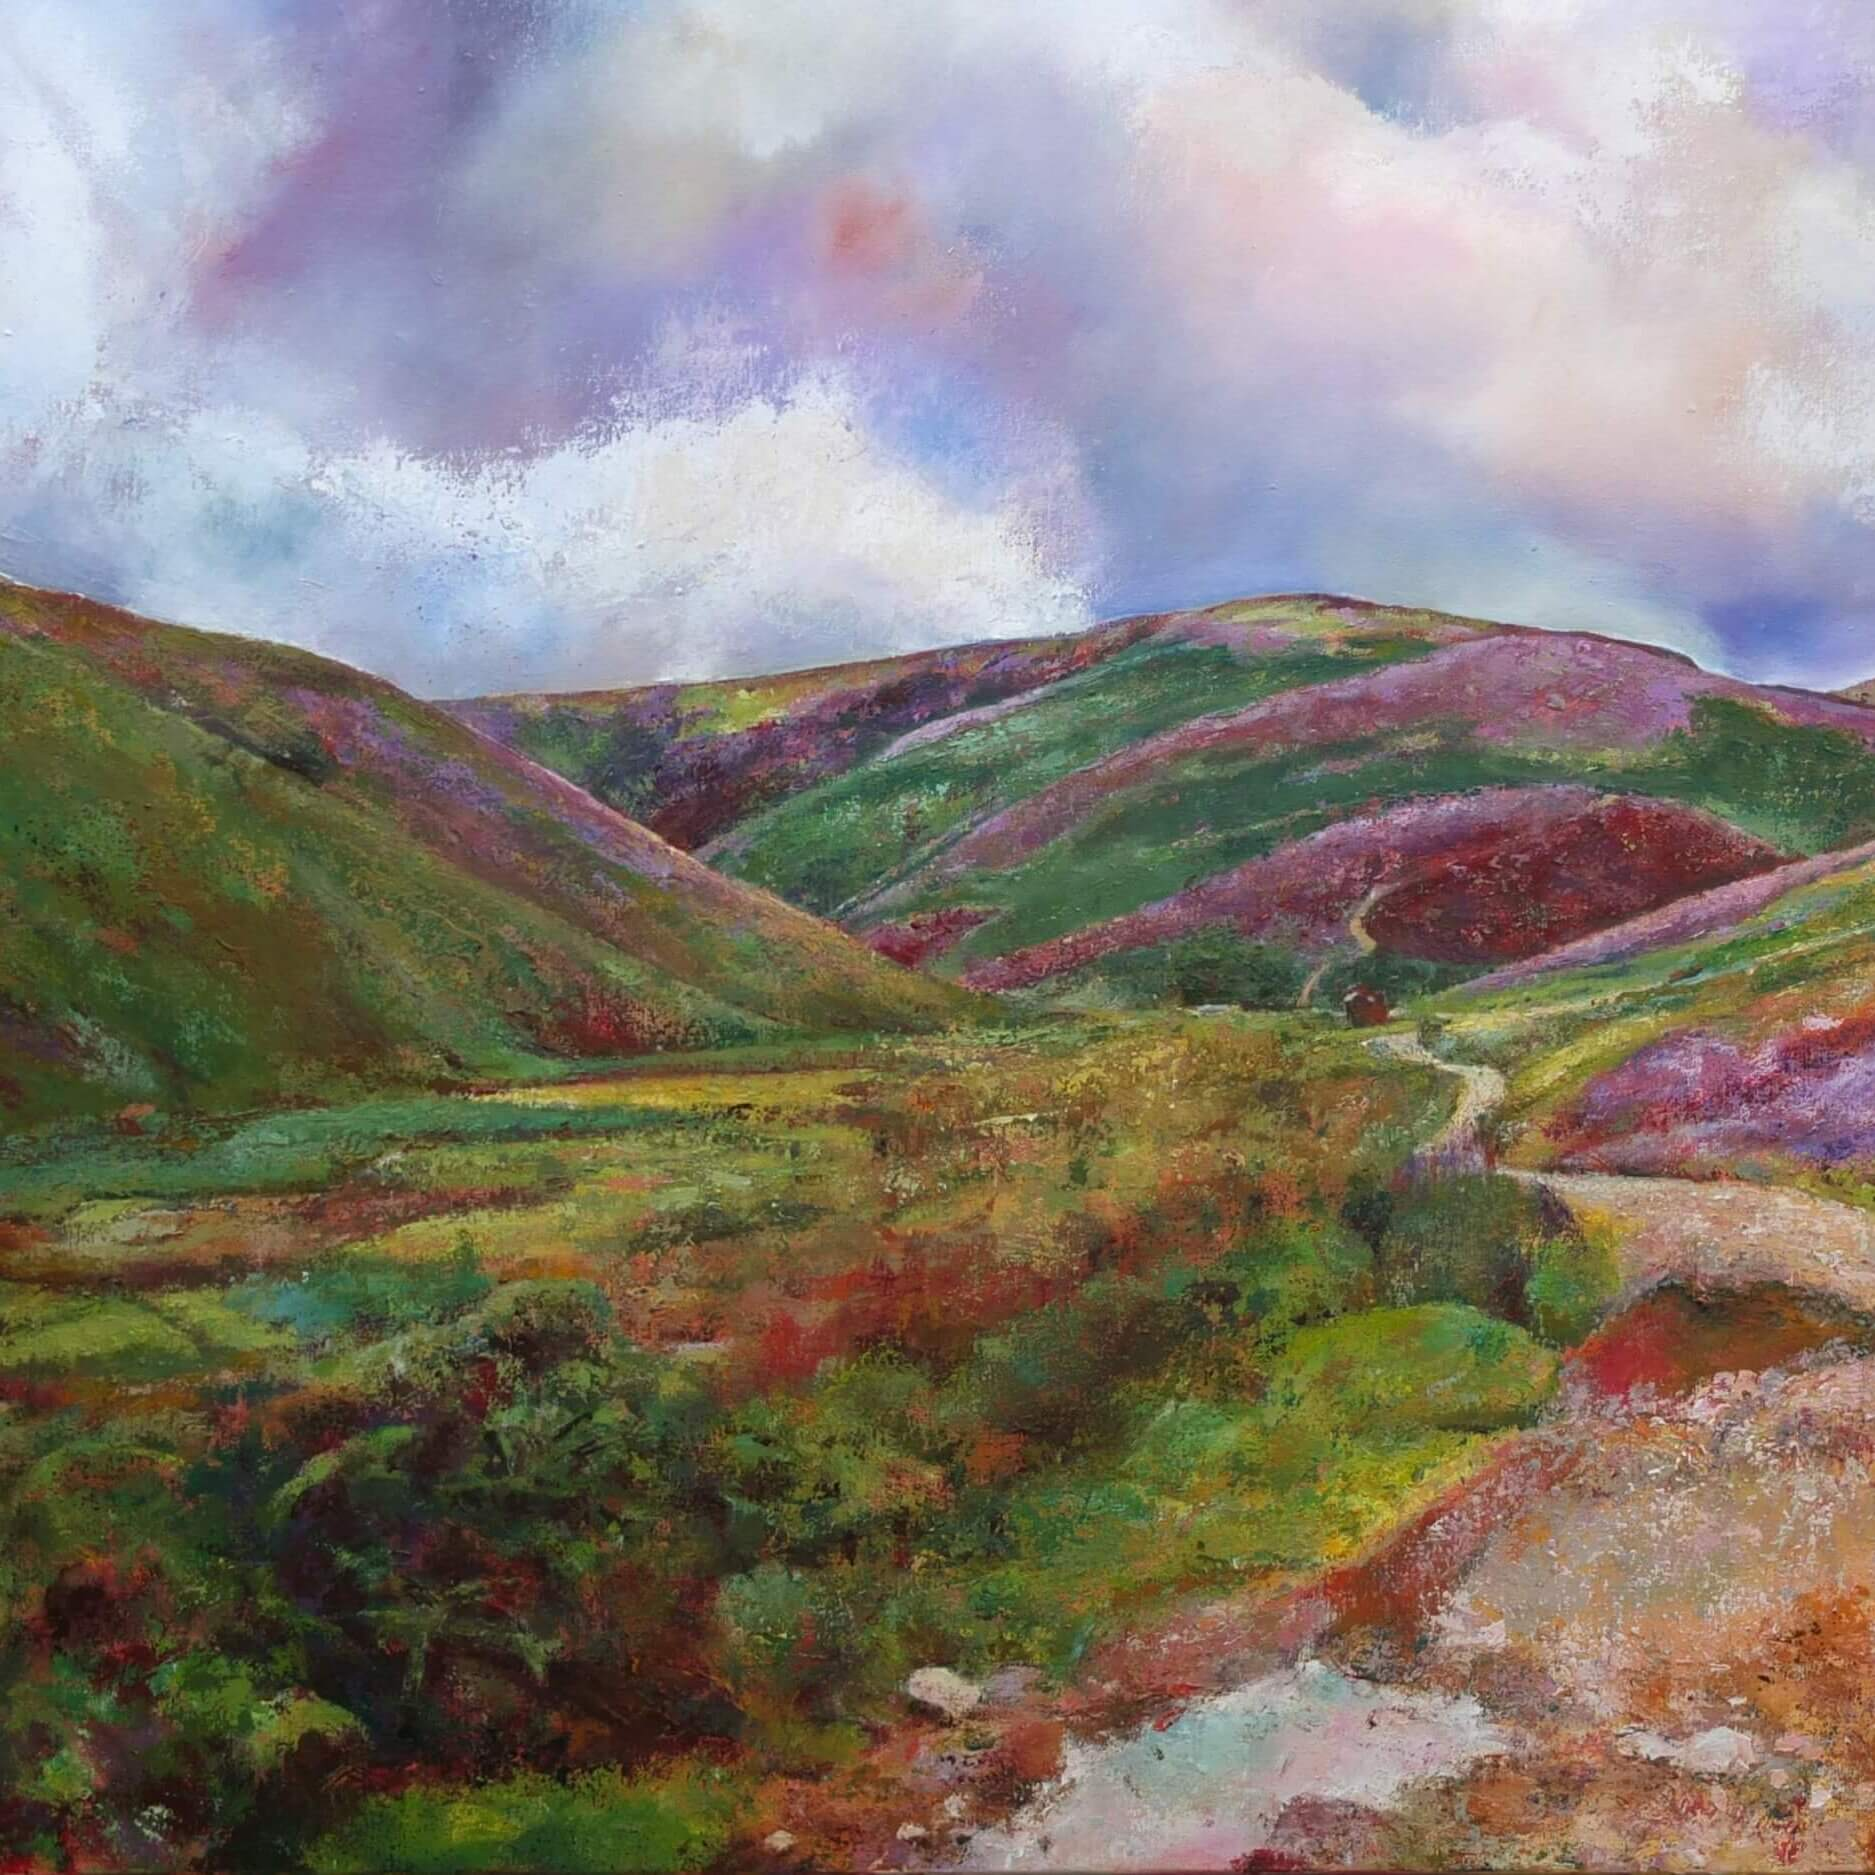 'Heatherhope', Cheviot, Borders